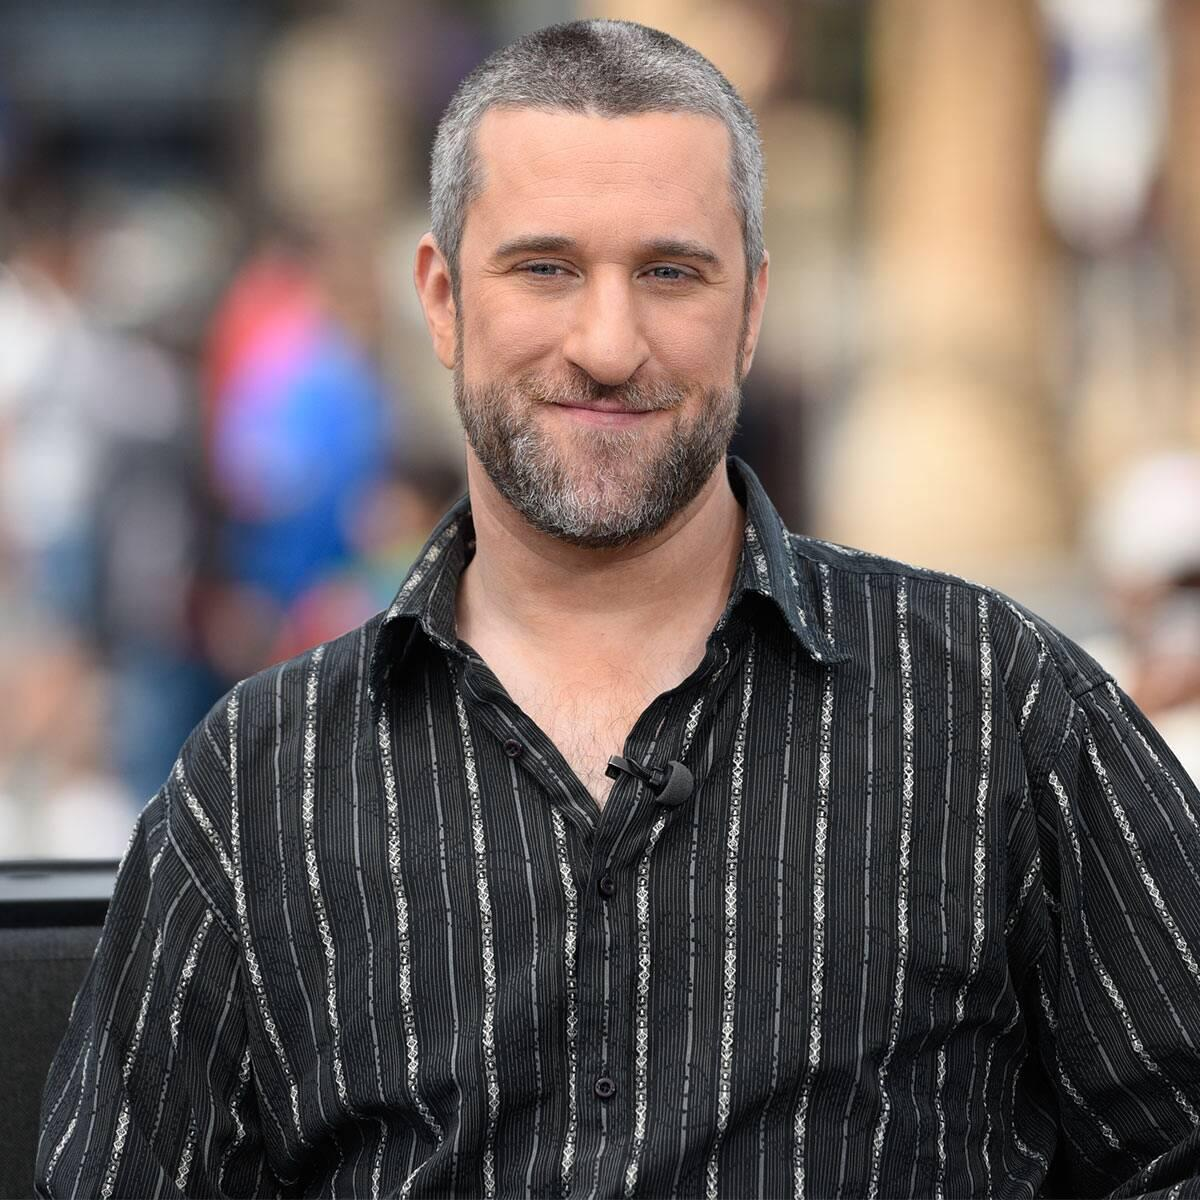 """Saved By the Bell 's Dustin Diamond Is """"Likely"""" Facing Cancer Diagnosis After Hospitalization"""